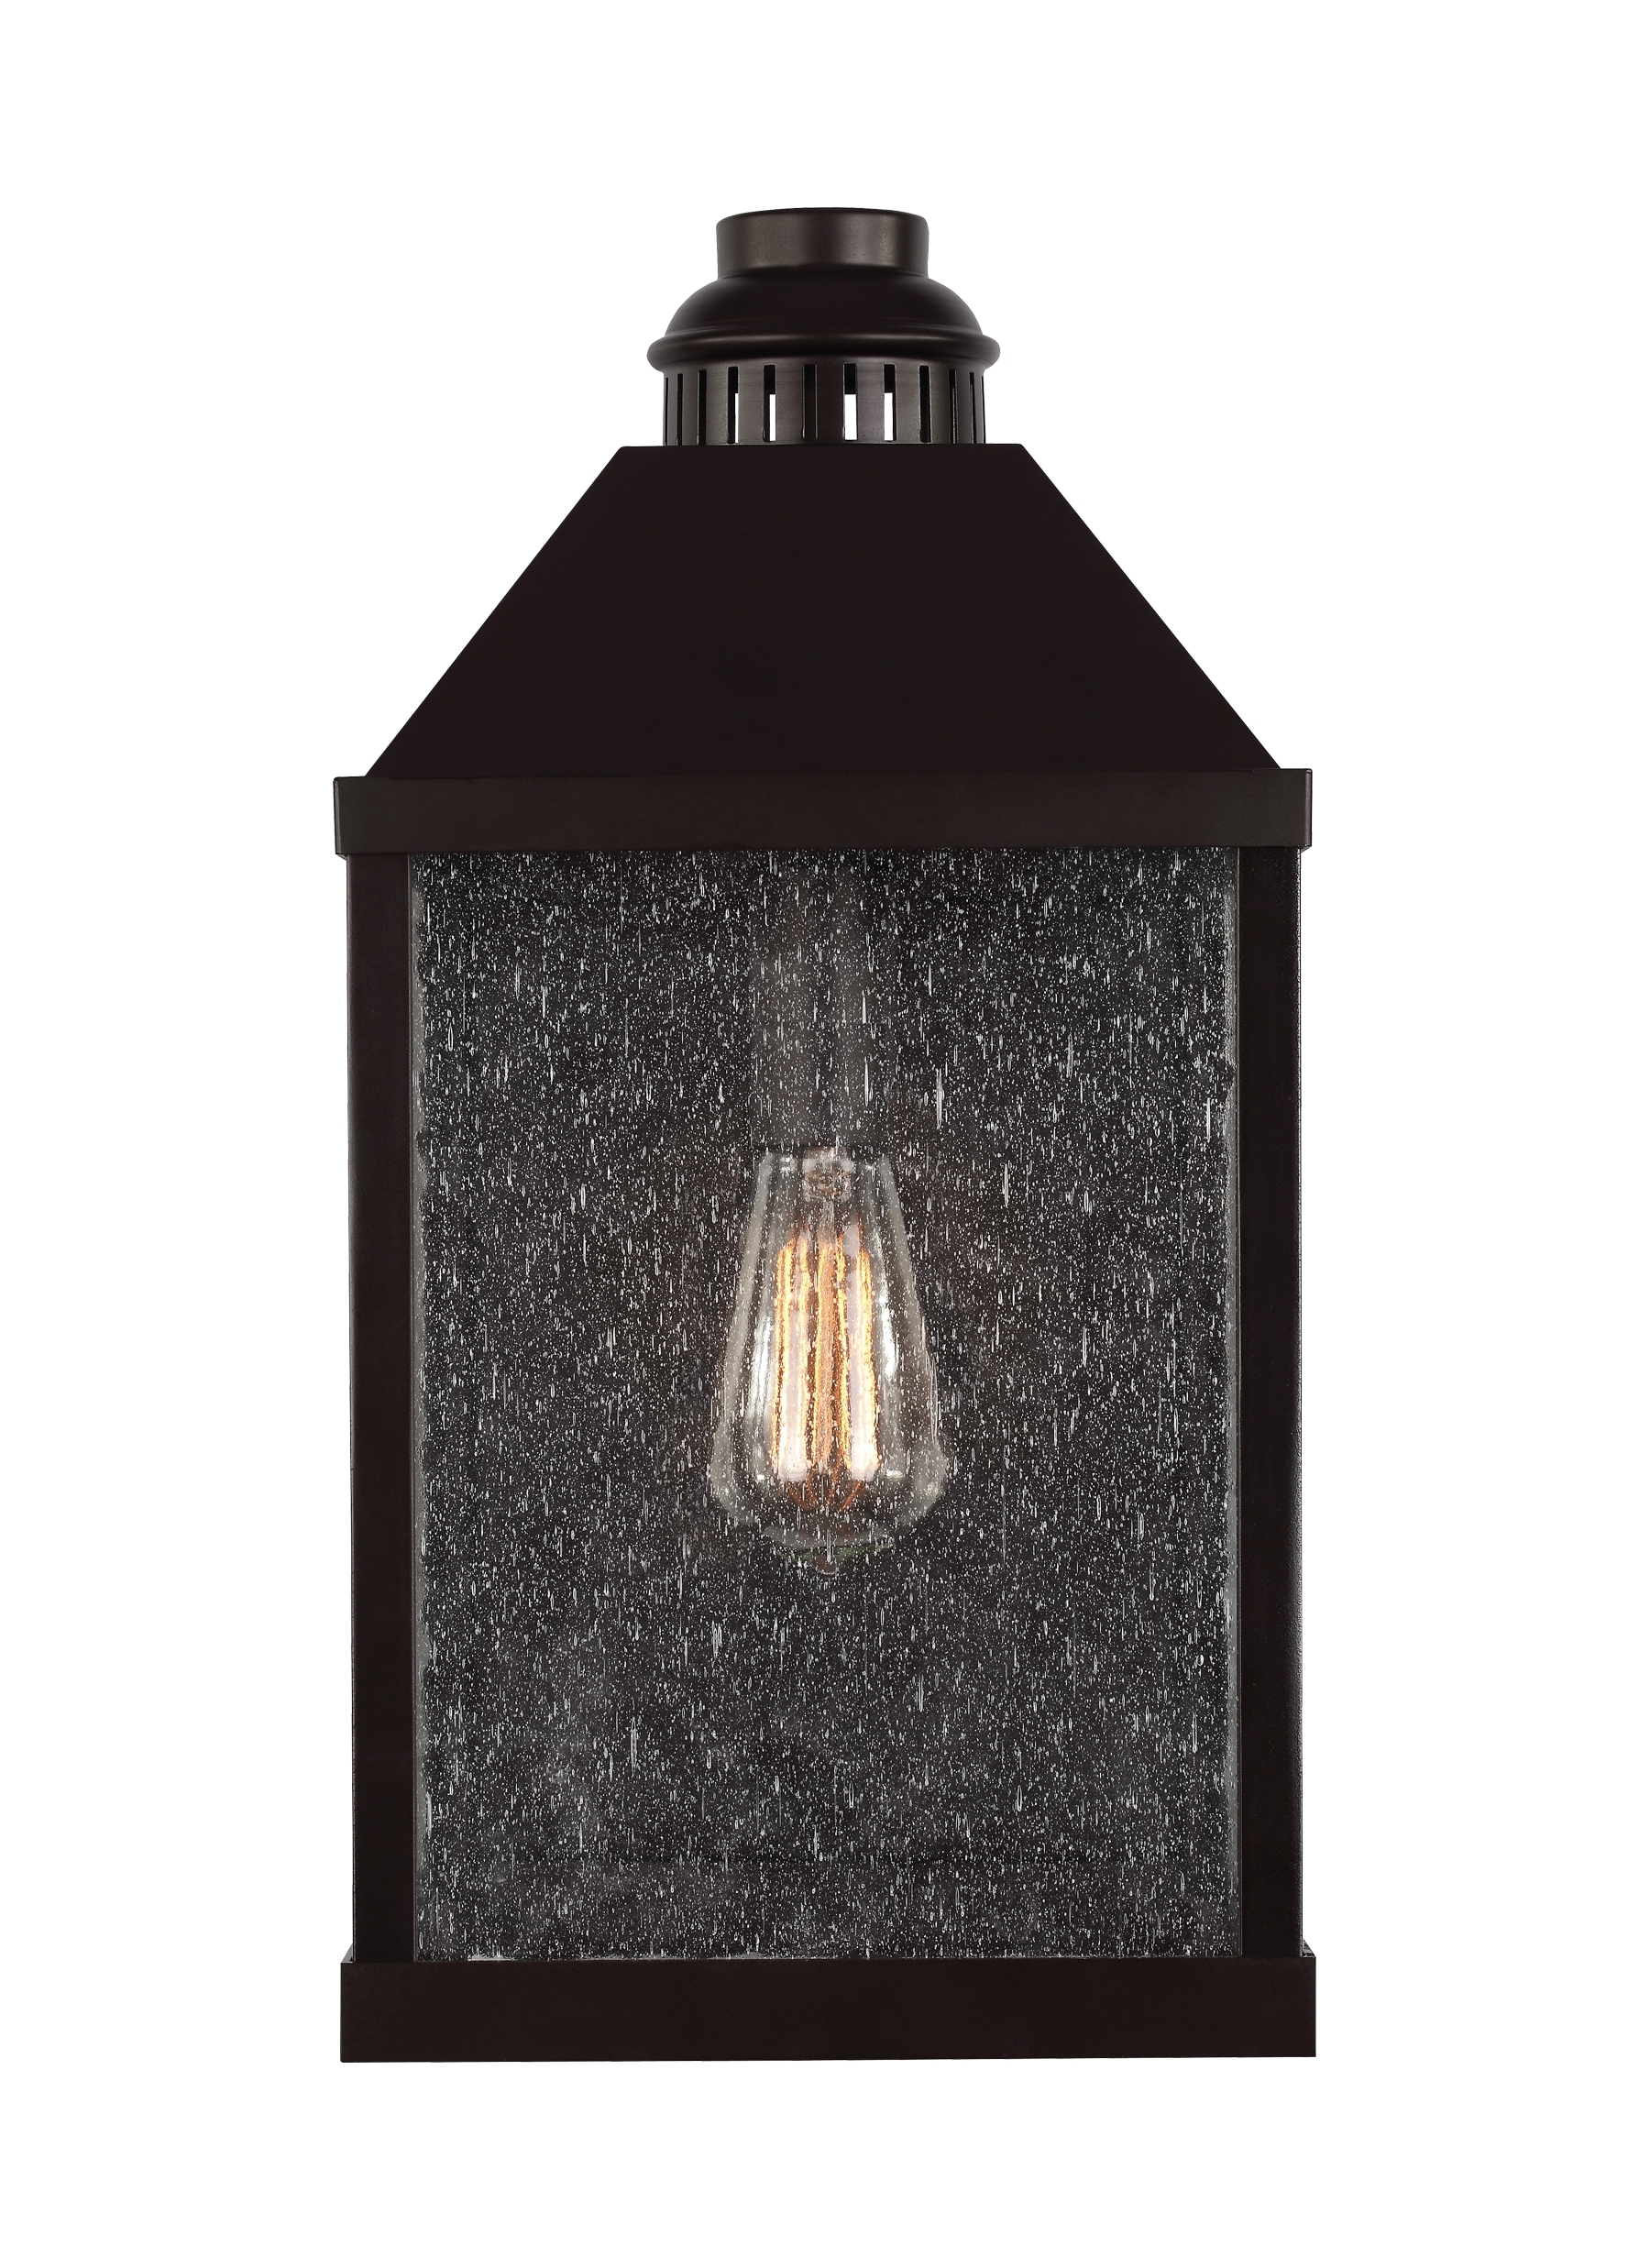 Light Fixtures Rustic Wall Sconce Fixture Lodge Style Sconces In Widely Used Rustic Outdoor Electric Lanterns (View 14 of 20)